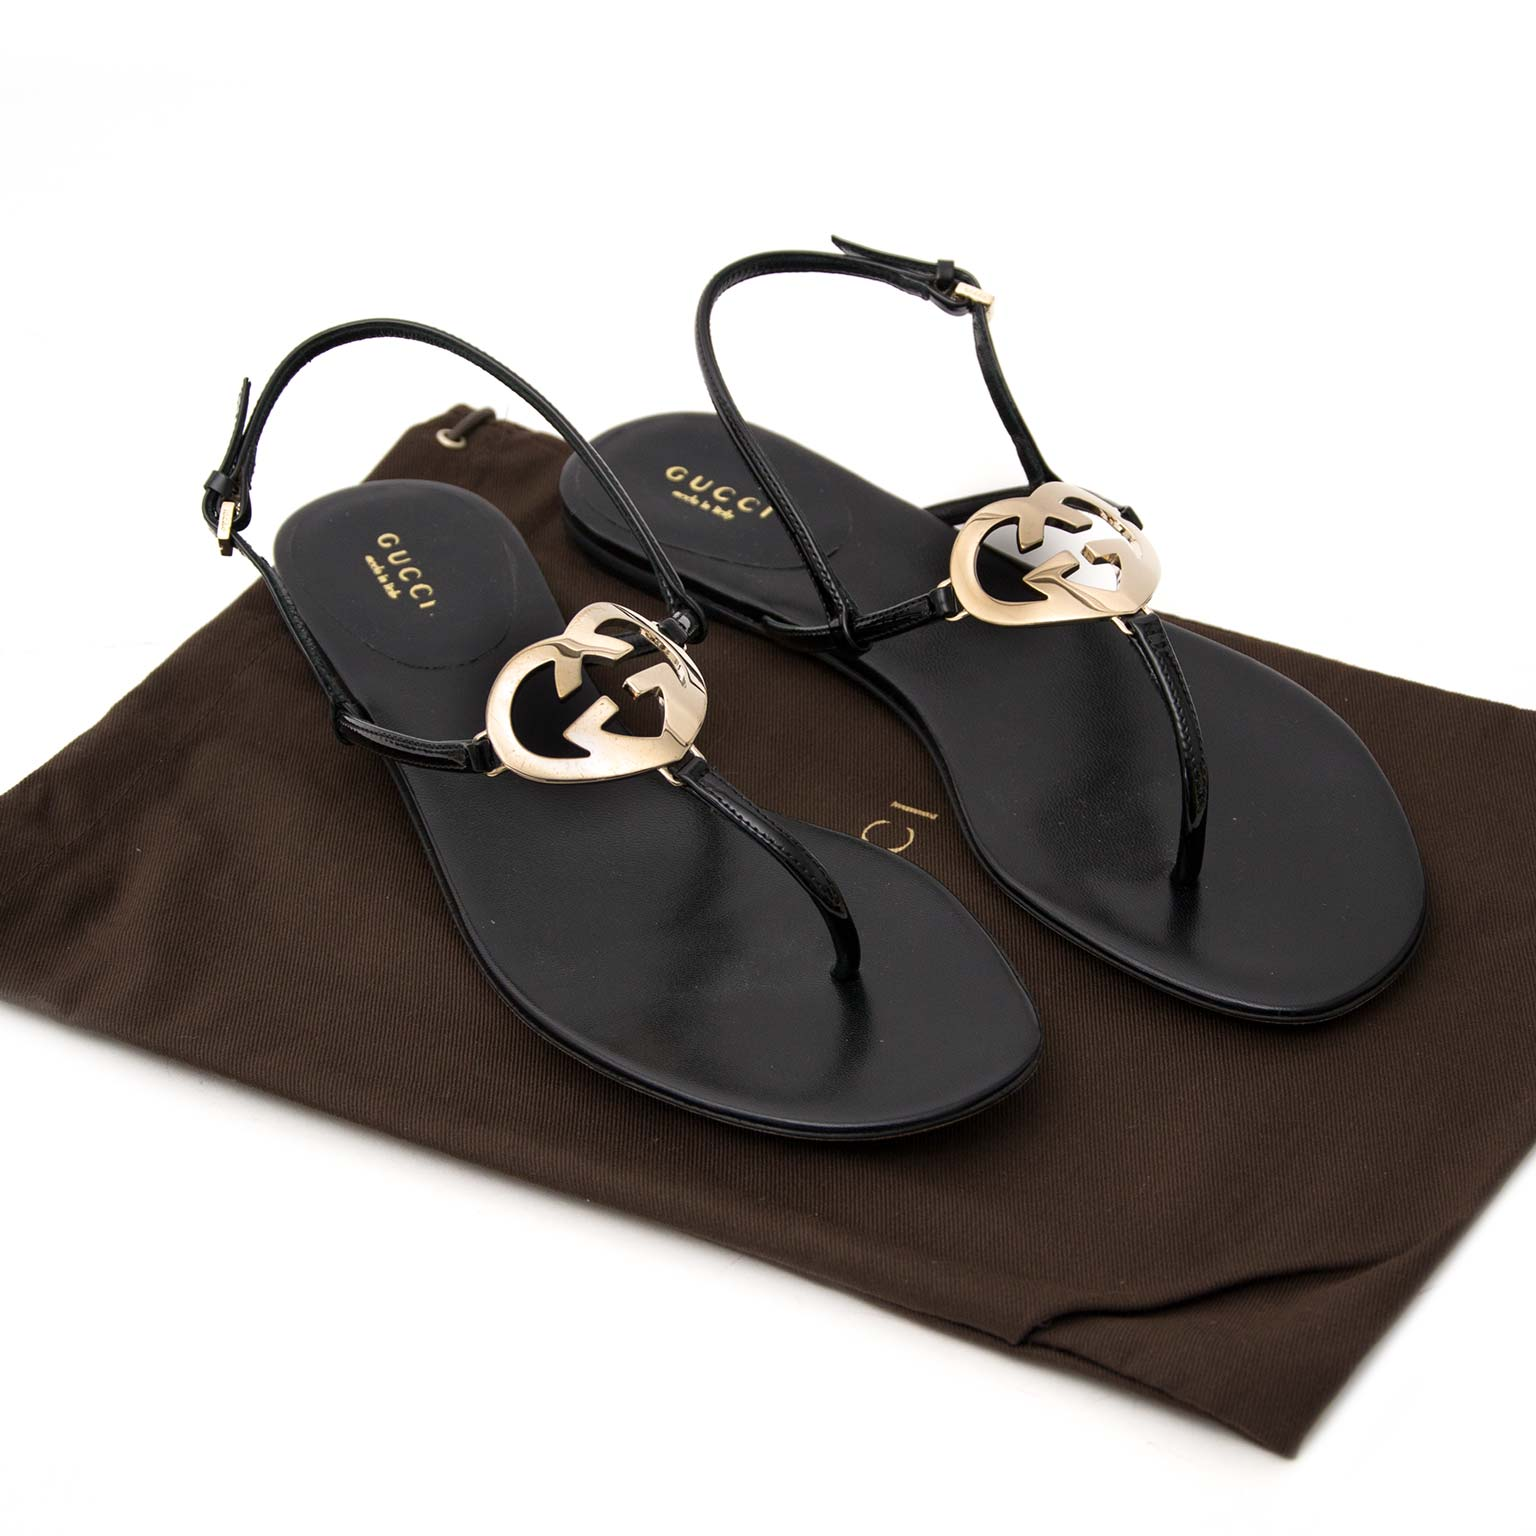 Gucci Black GG Heart Sandals acheter en ligne seconde main